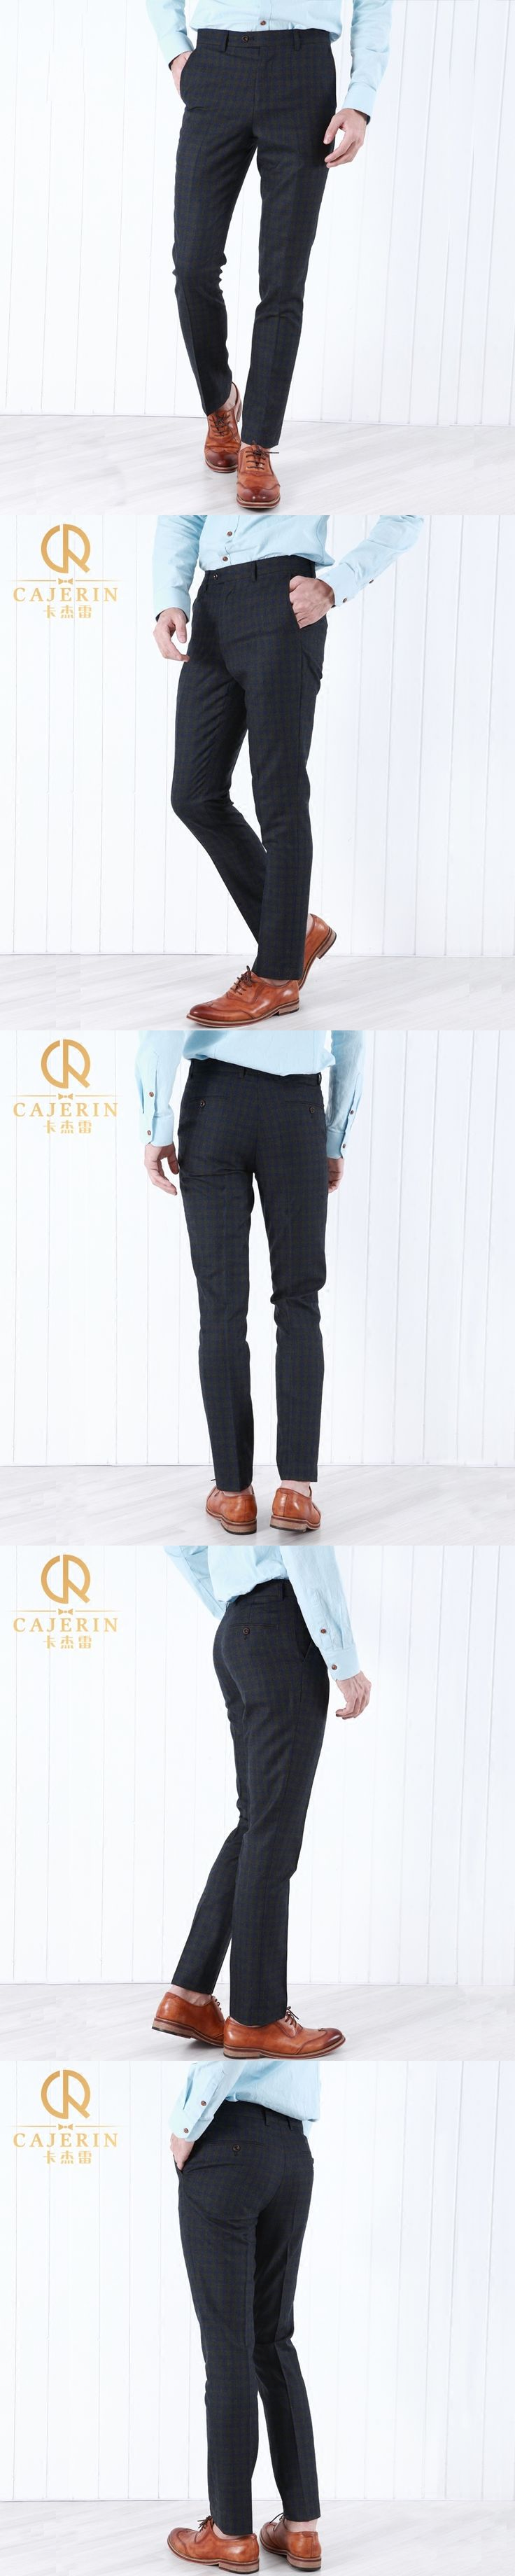 Pre Sale 100% Wool Men Dress Pants Formal Warm Winter Casual Wedding Groom Prom Party Suits Trousers Fashion Blue Plaid